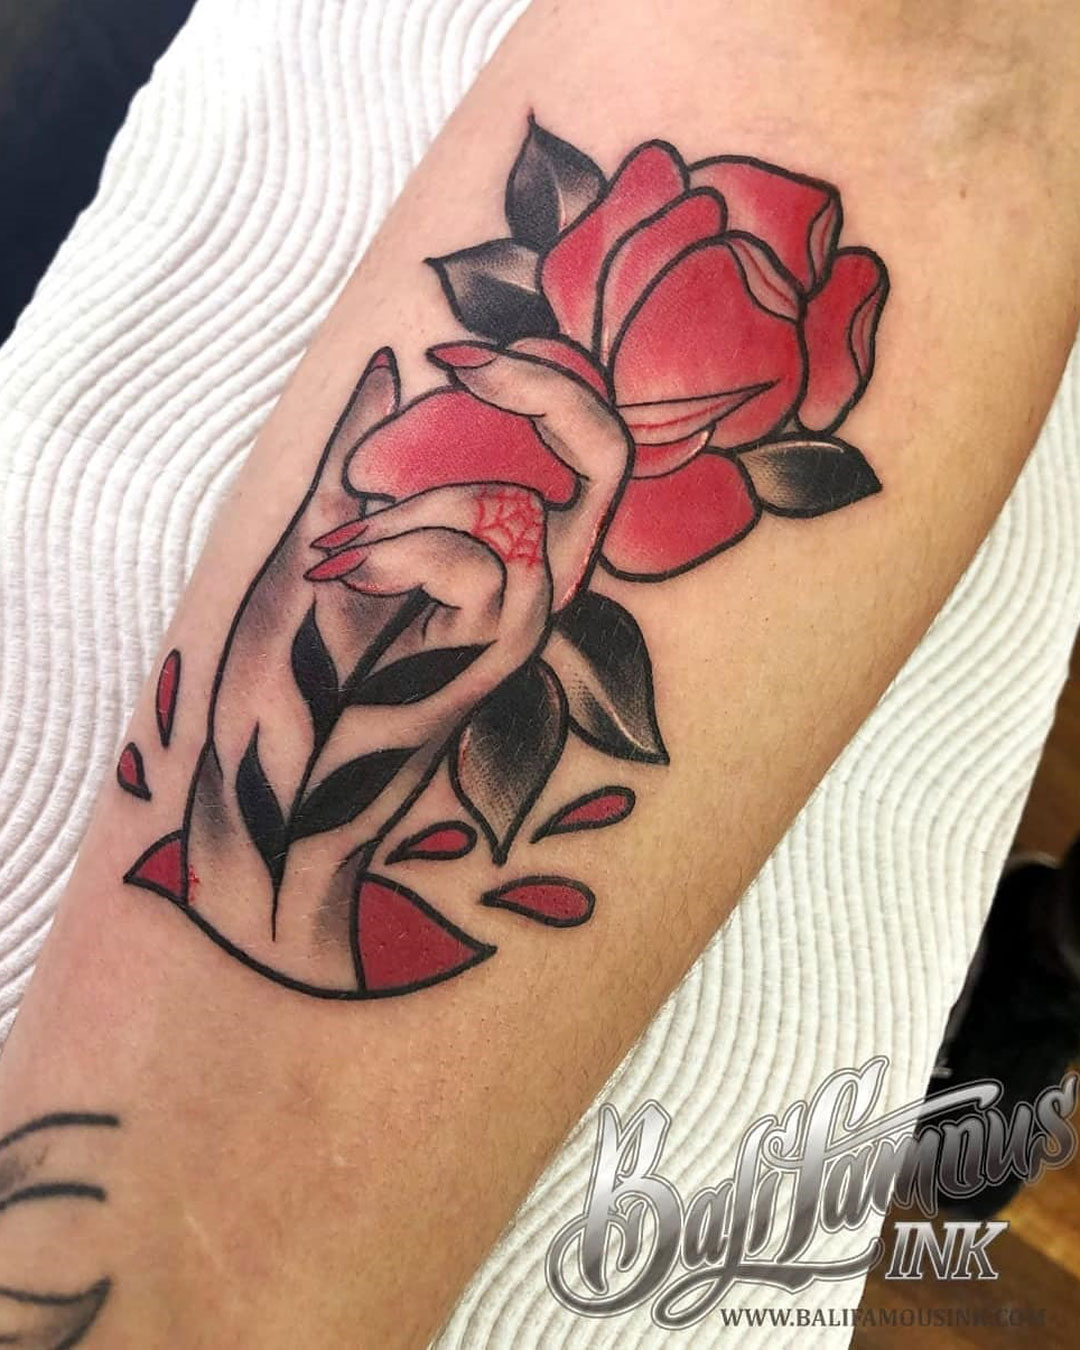 Bali-Famous-Ink-Tattoo-Bali-color-tattoo-4